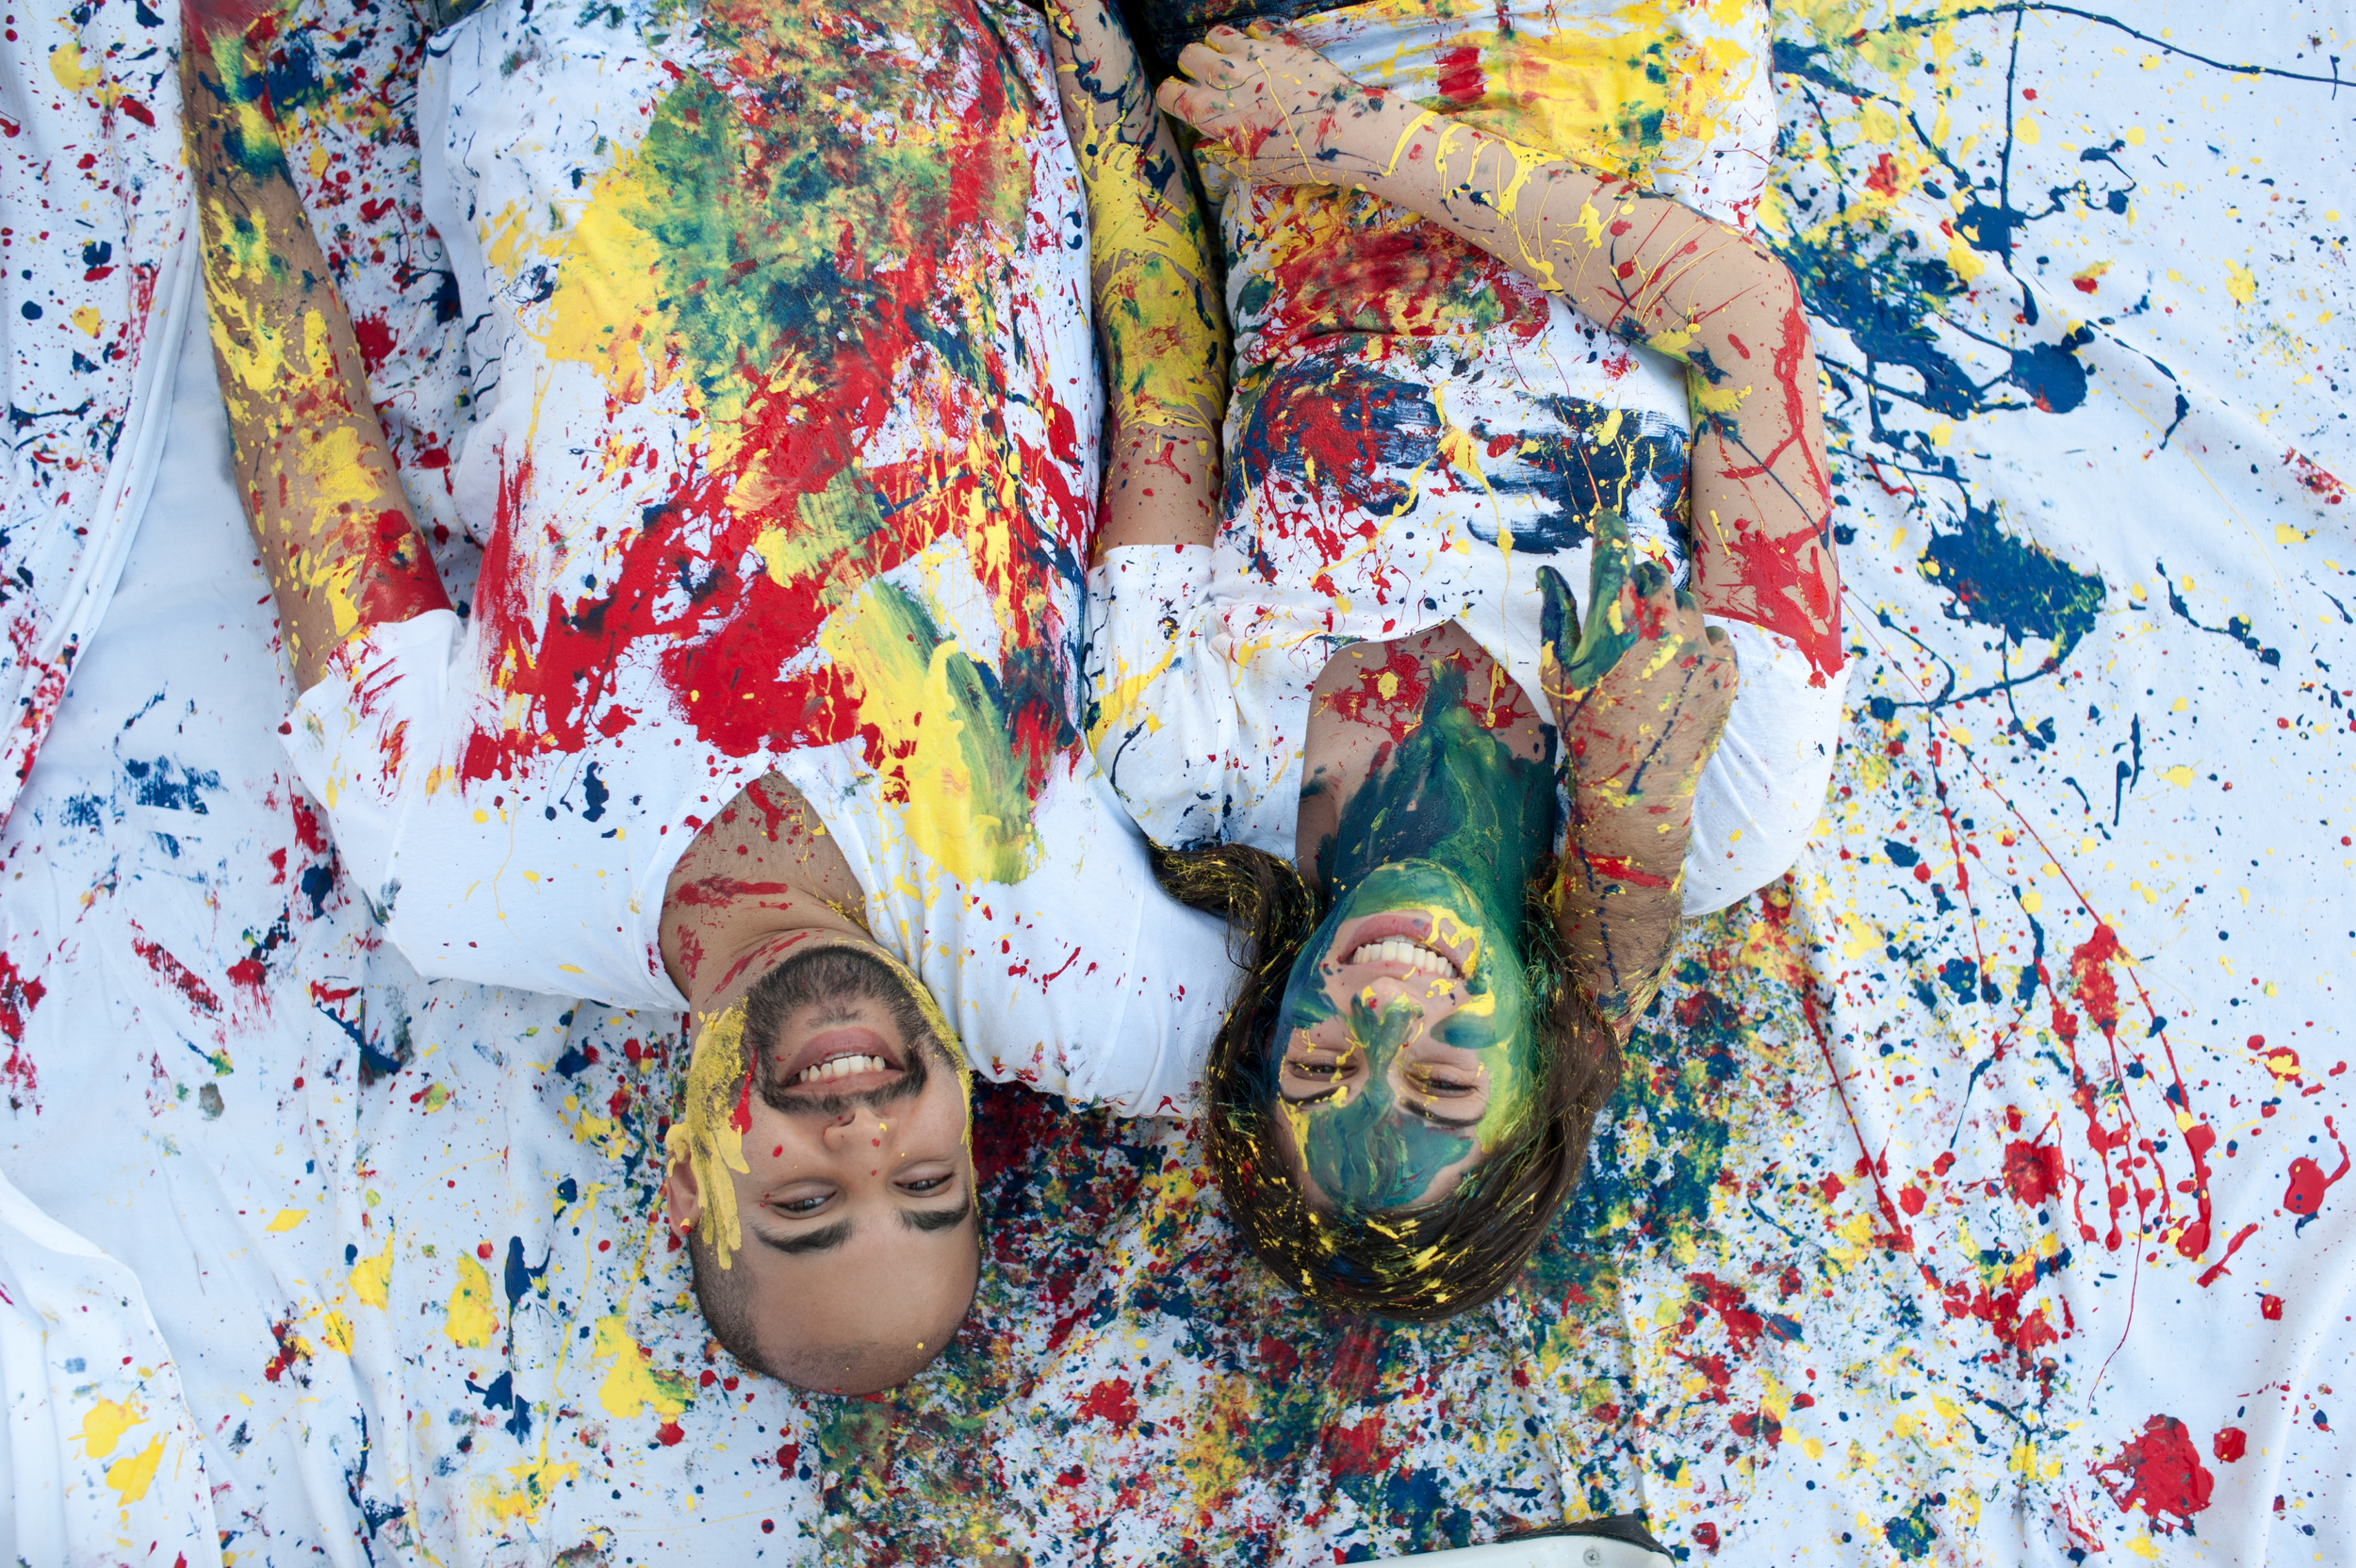 Paint War Engagement Session by Mantas Kubilinskas-17.jpg